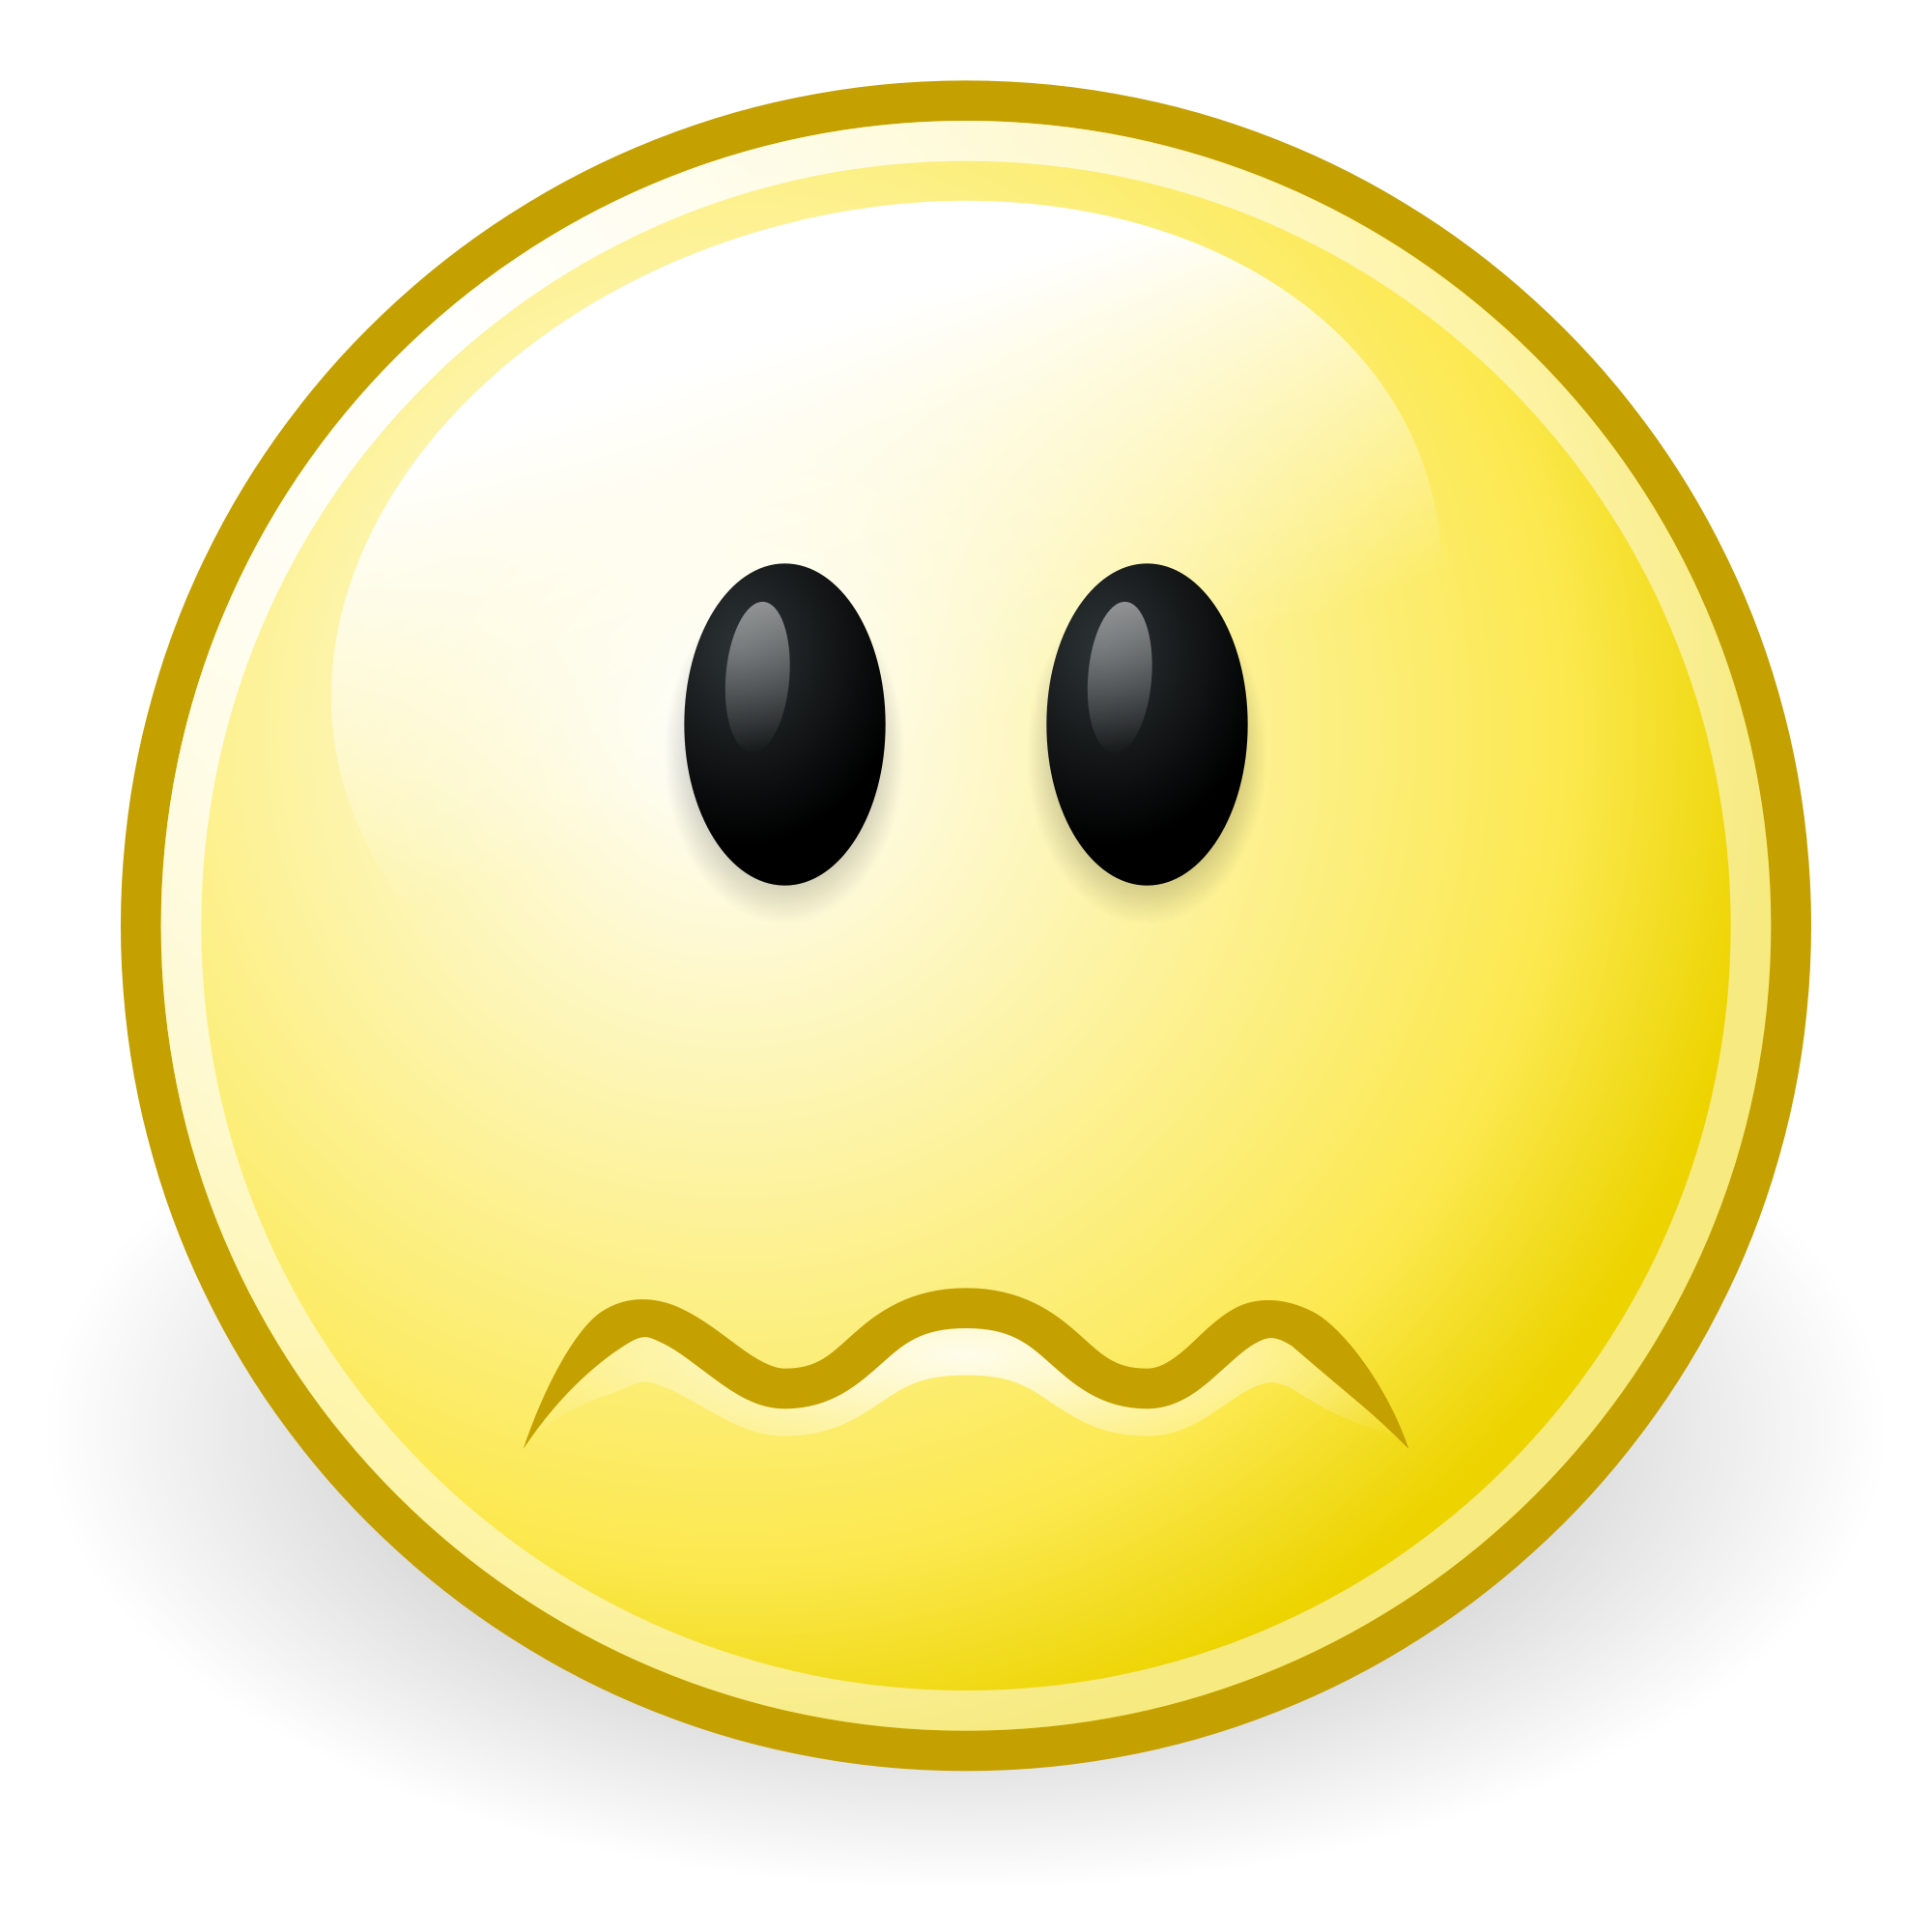 Worried smiley group filegnomefaceworriedsvg. Worry clipart happy face